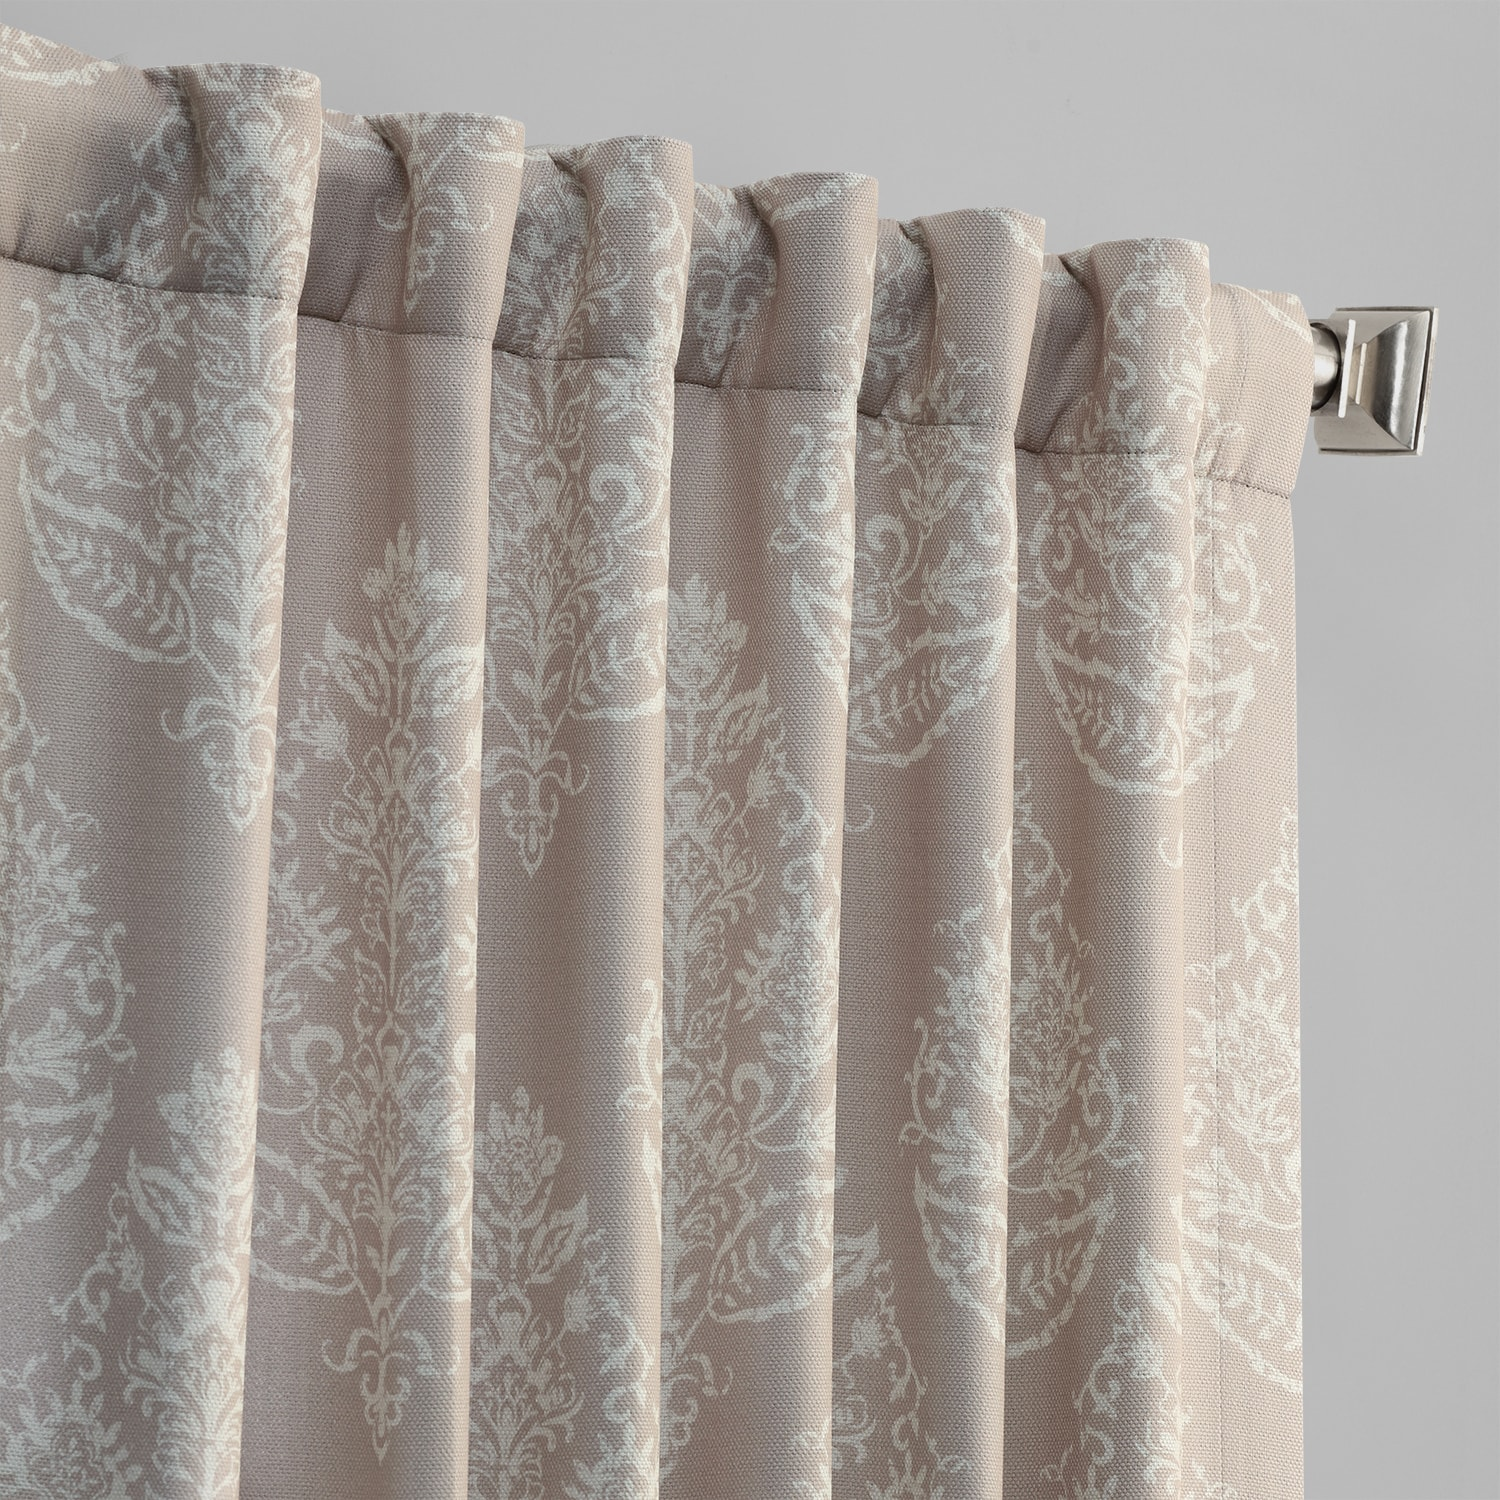 Istanbul Tan Printed Linen Textured Blackout Curtain